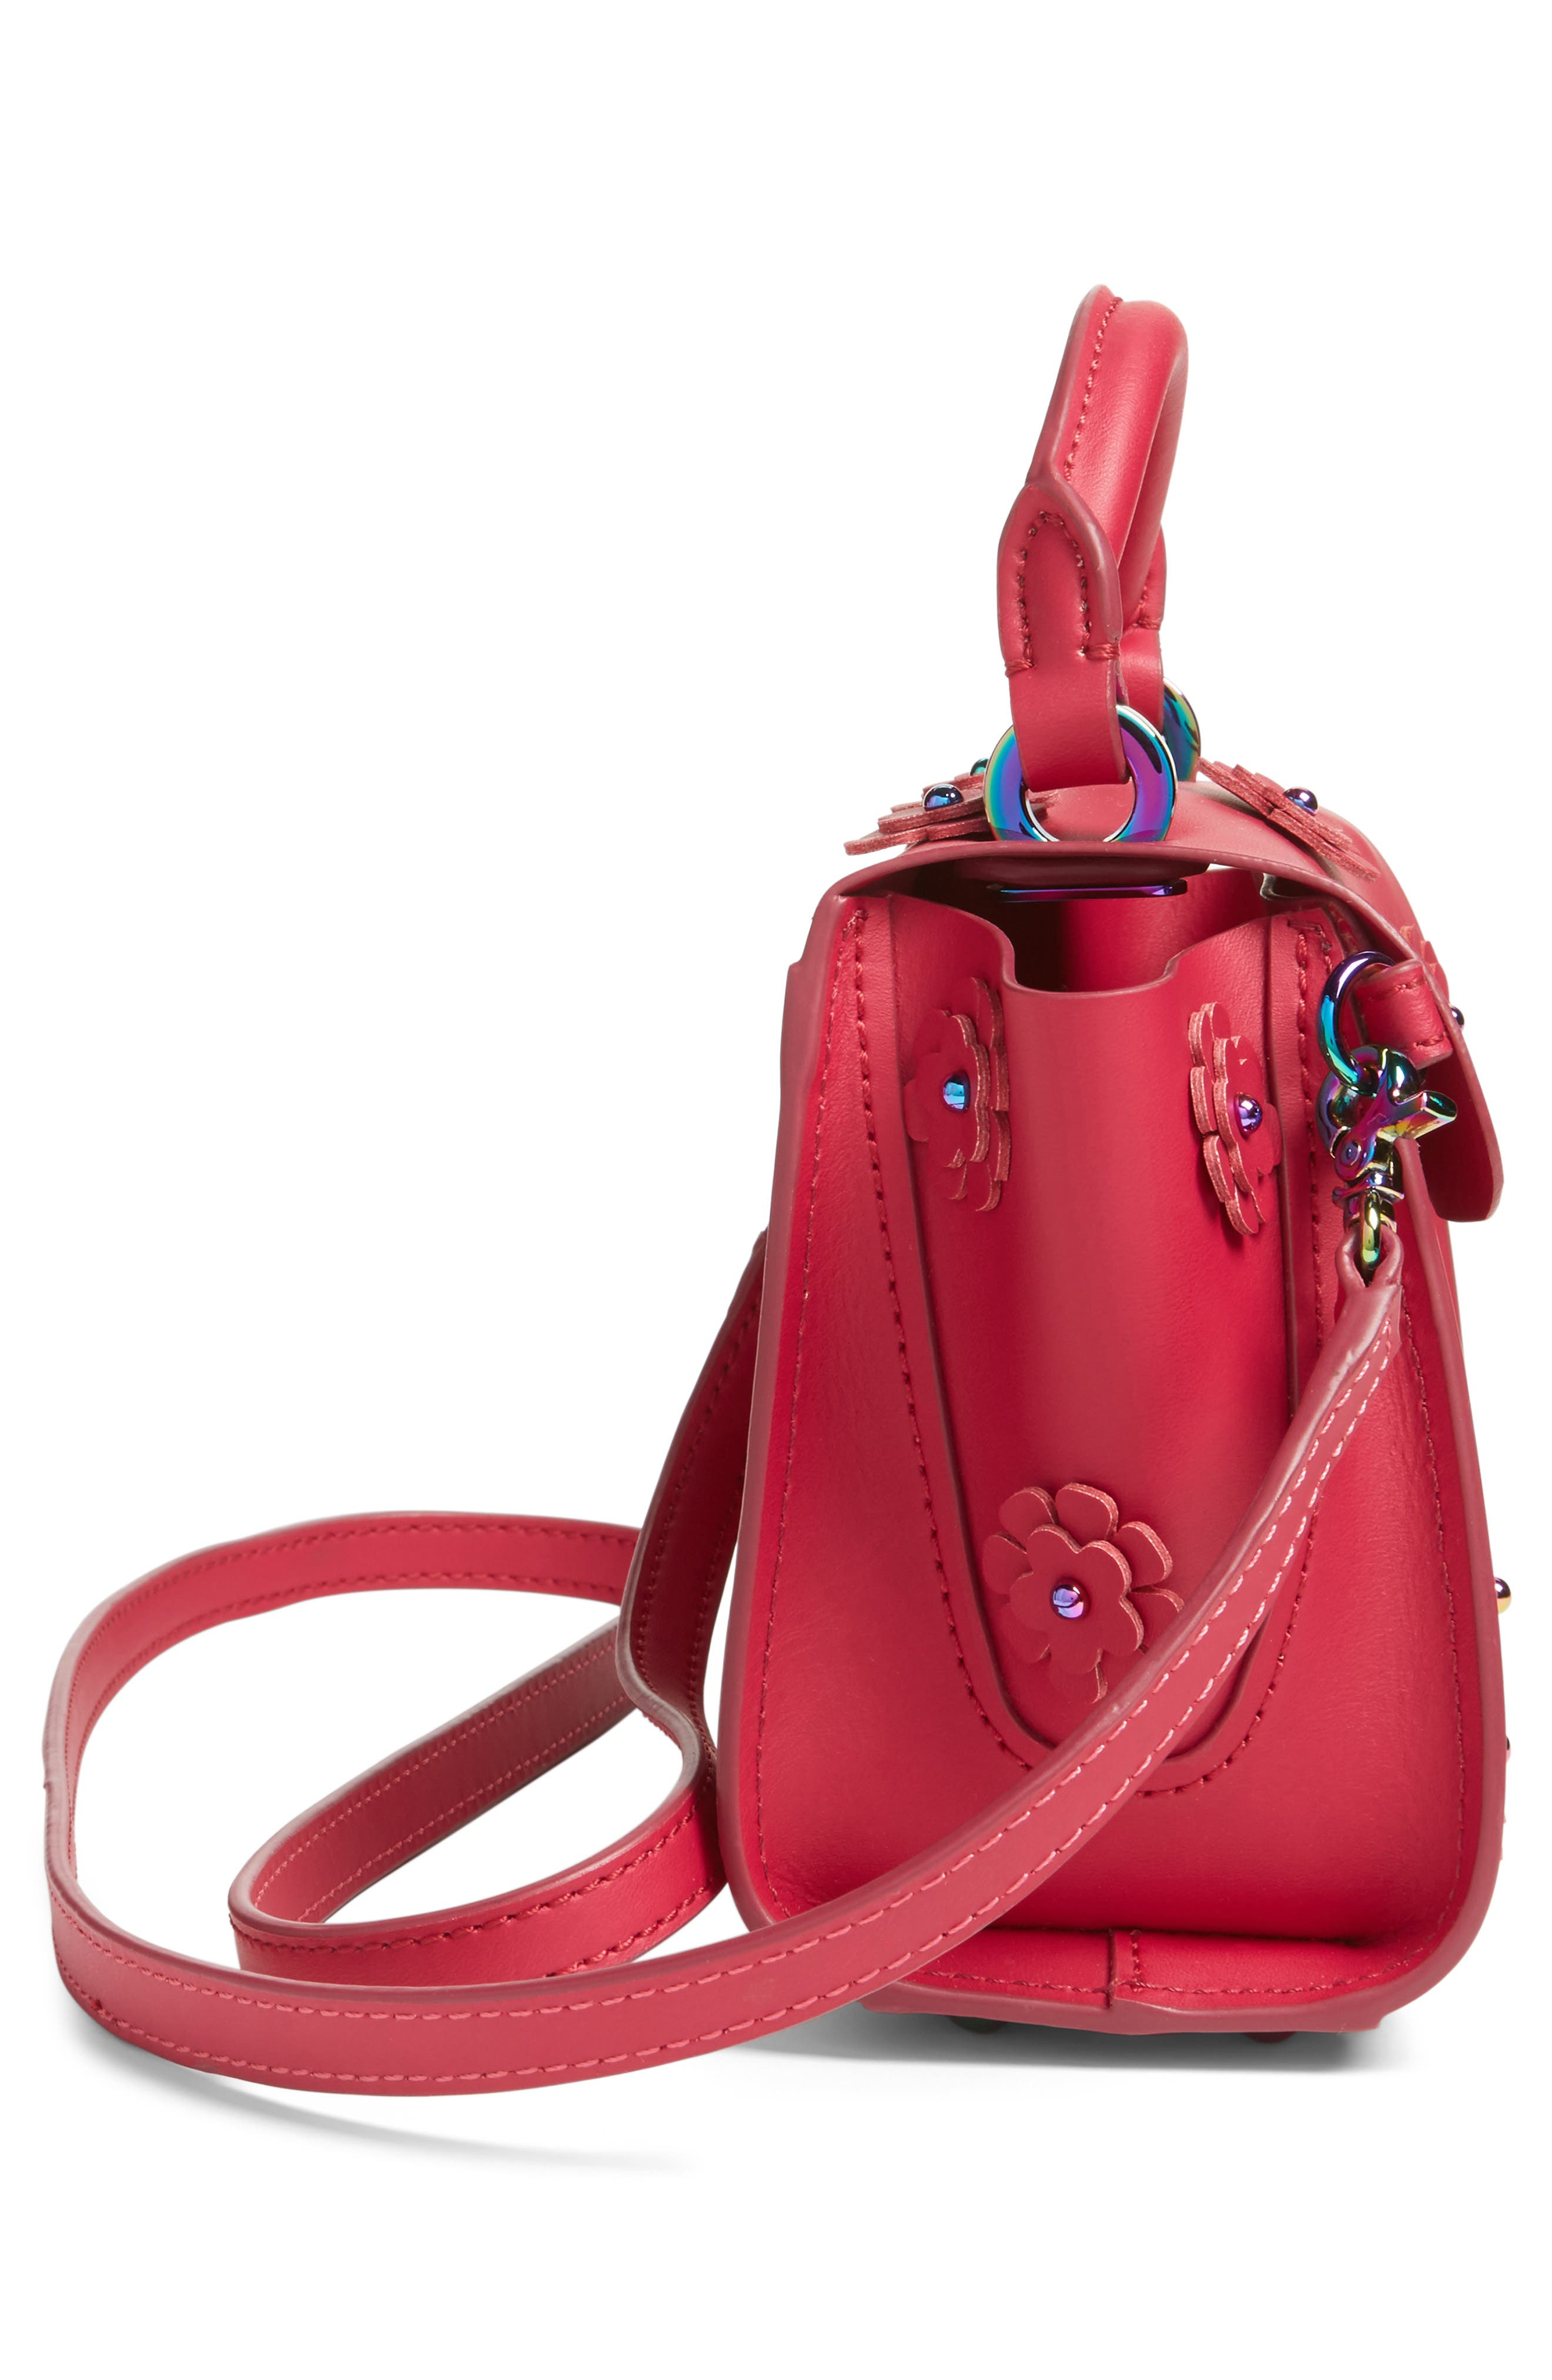 Mini Eartha Iconic Top Handle Leather Satchel,                             Alternate thumbnail 4, color,                             651